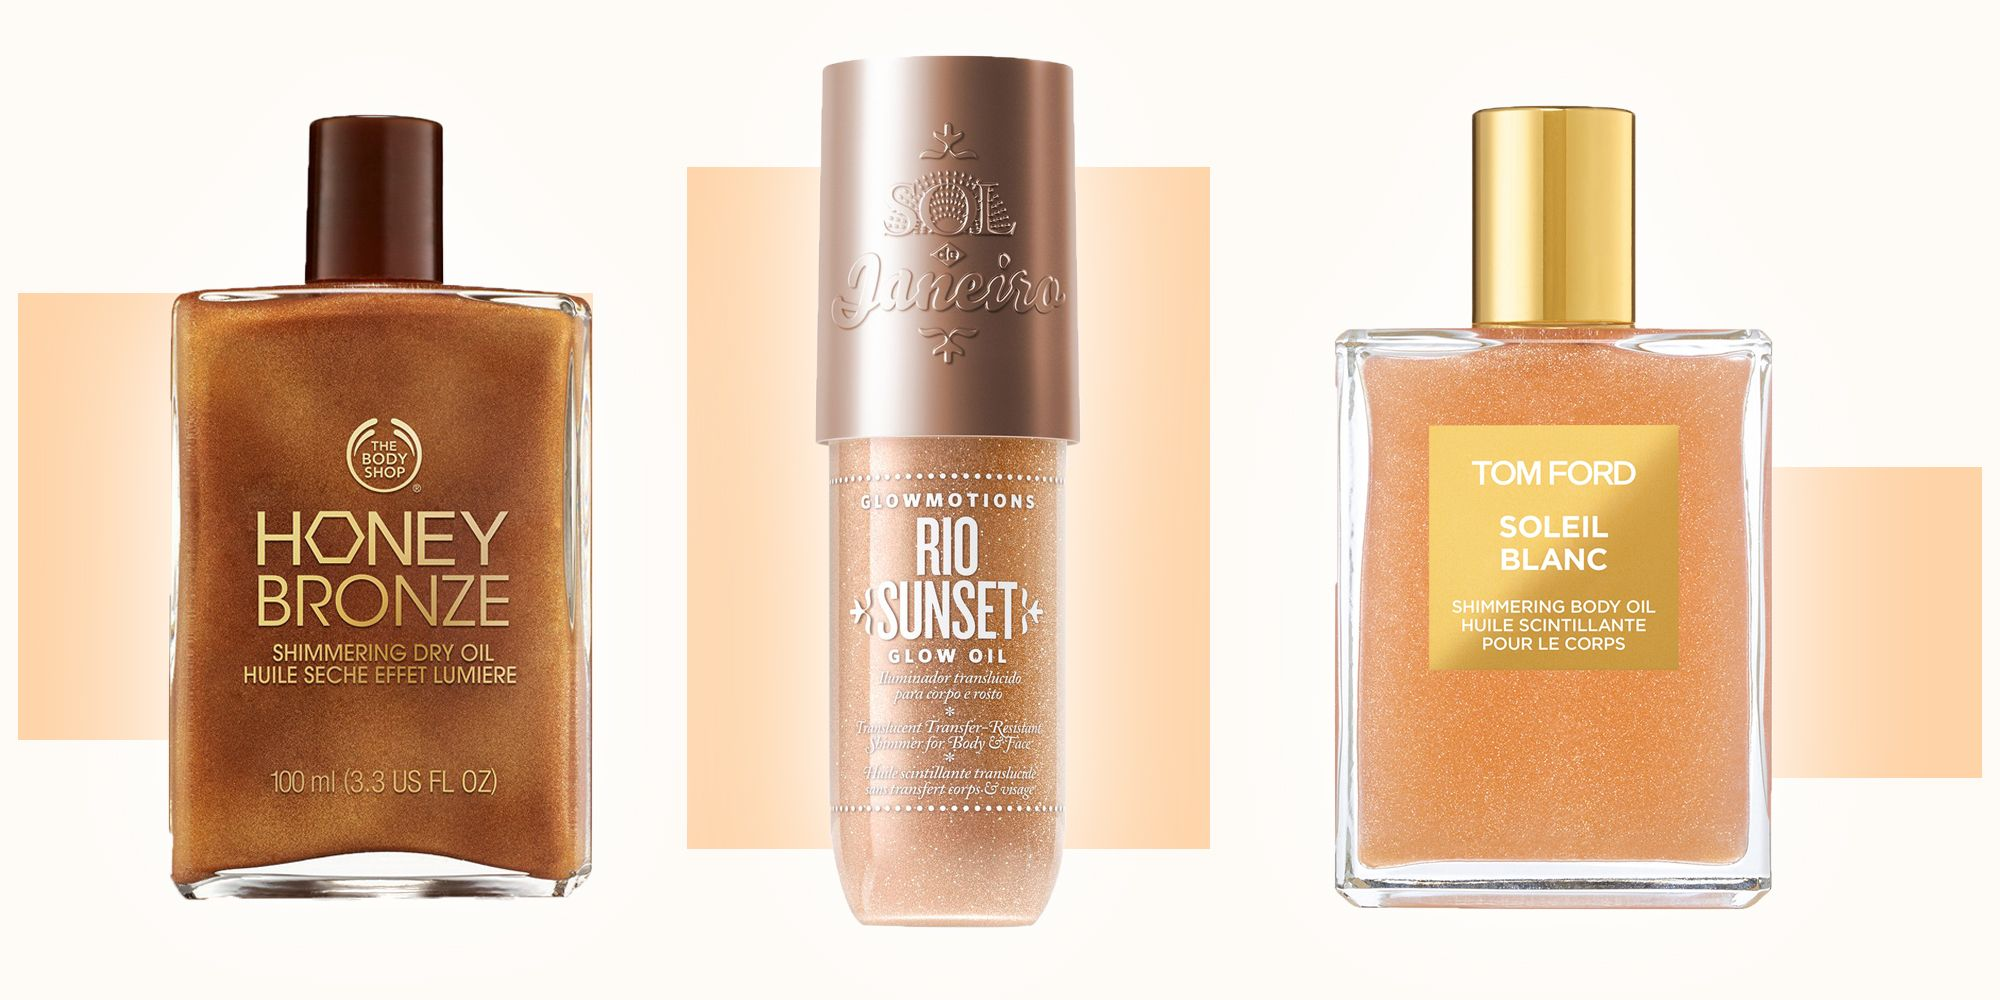 Body Oil 7 Shimmering Formulas For An Instant Glow Up